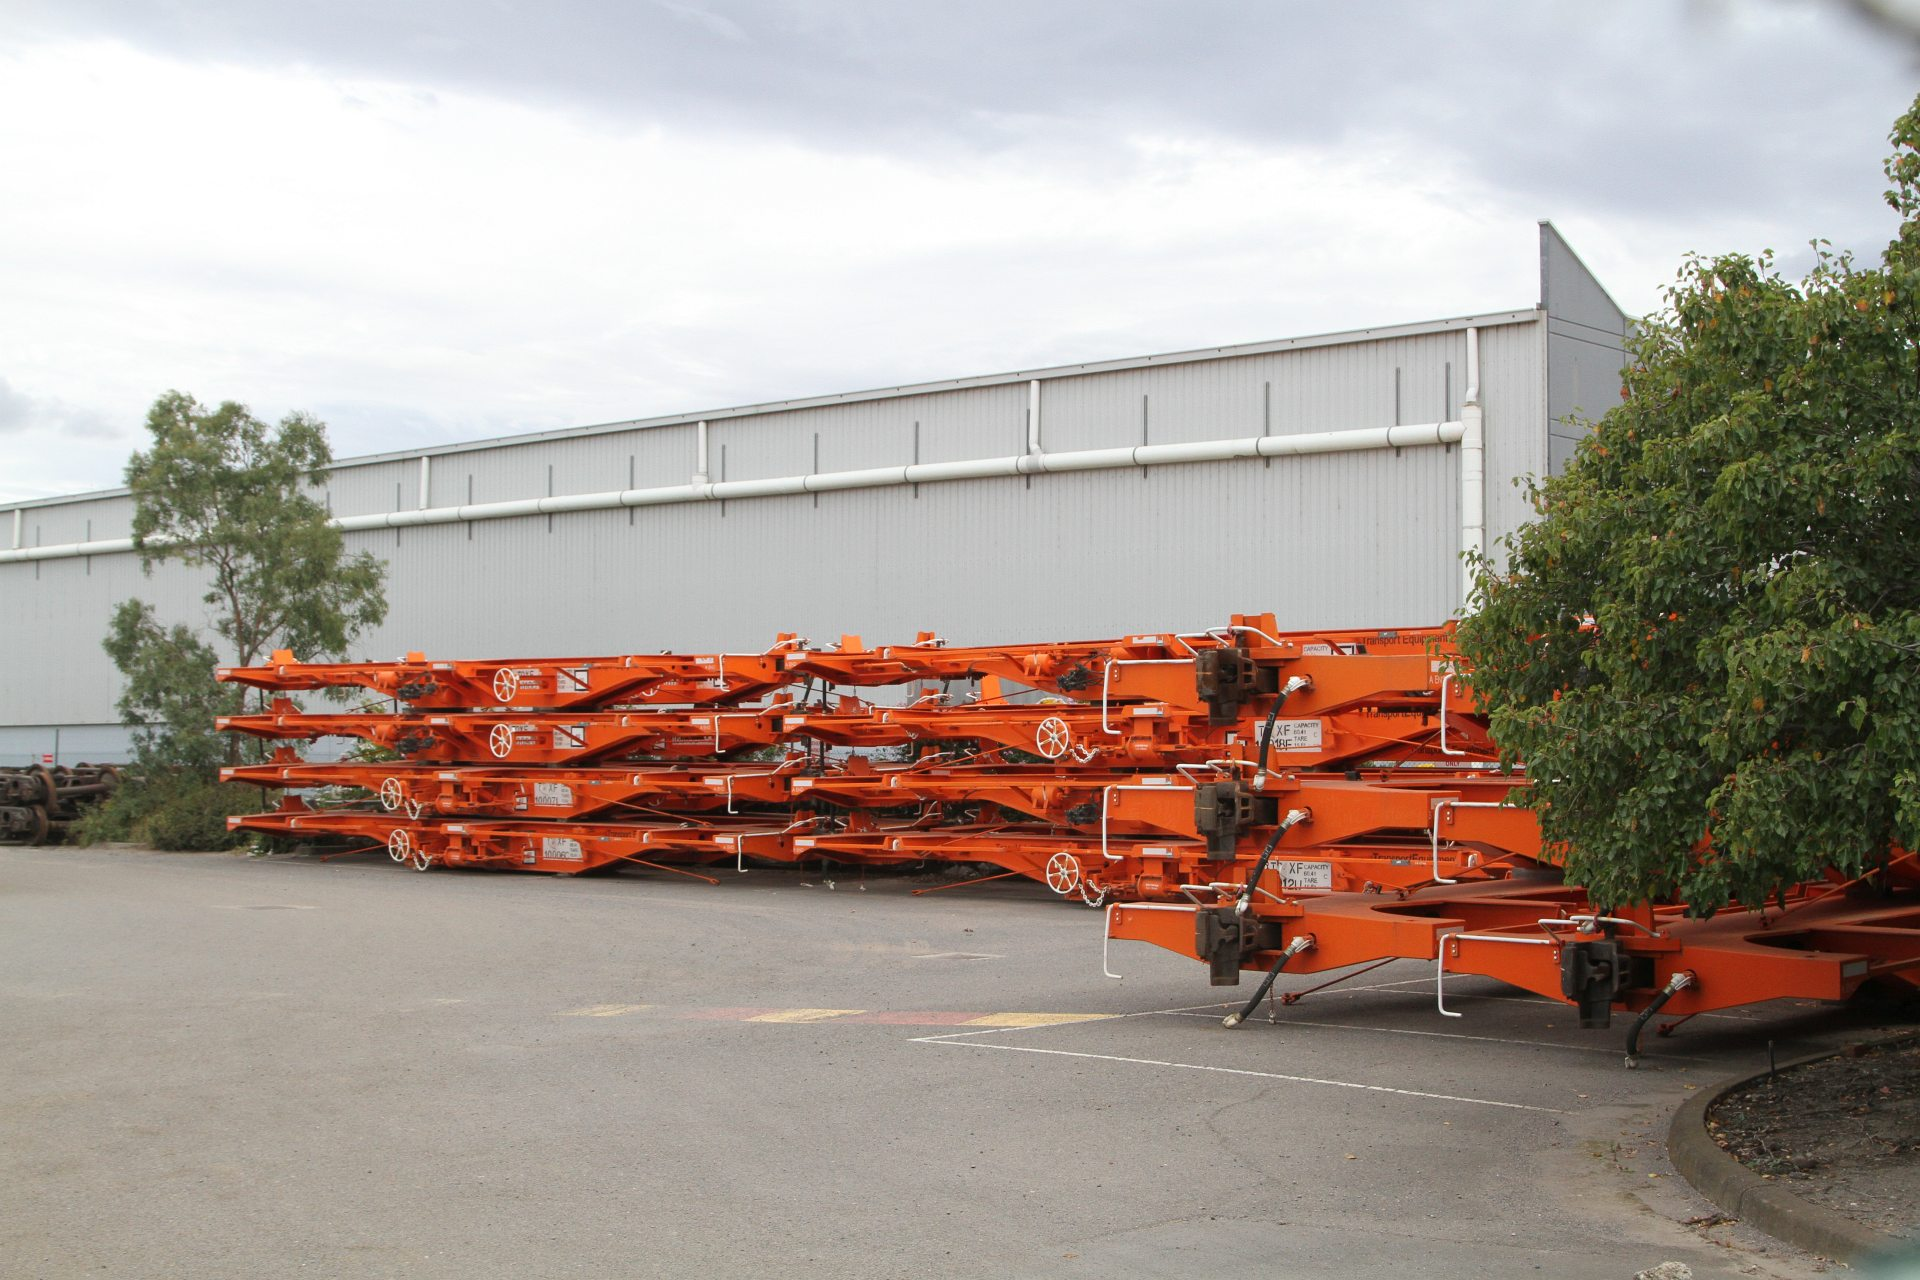 Tqxf Container Wagons Stored In The Qube Logistics Former